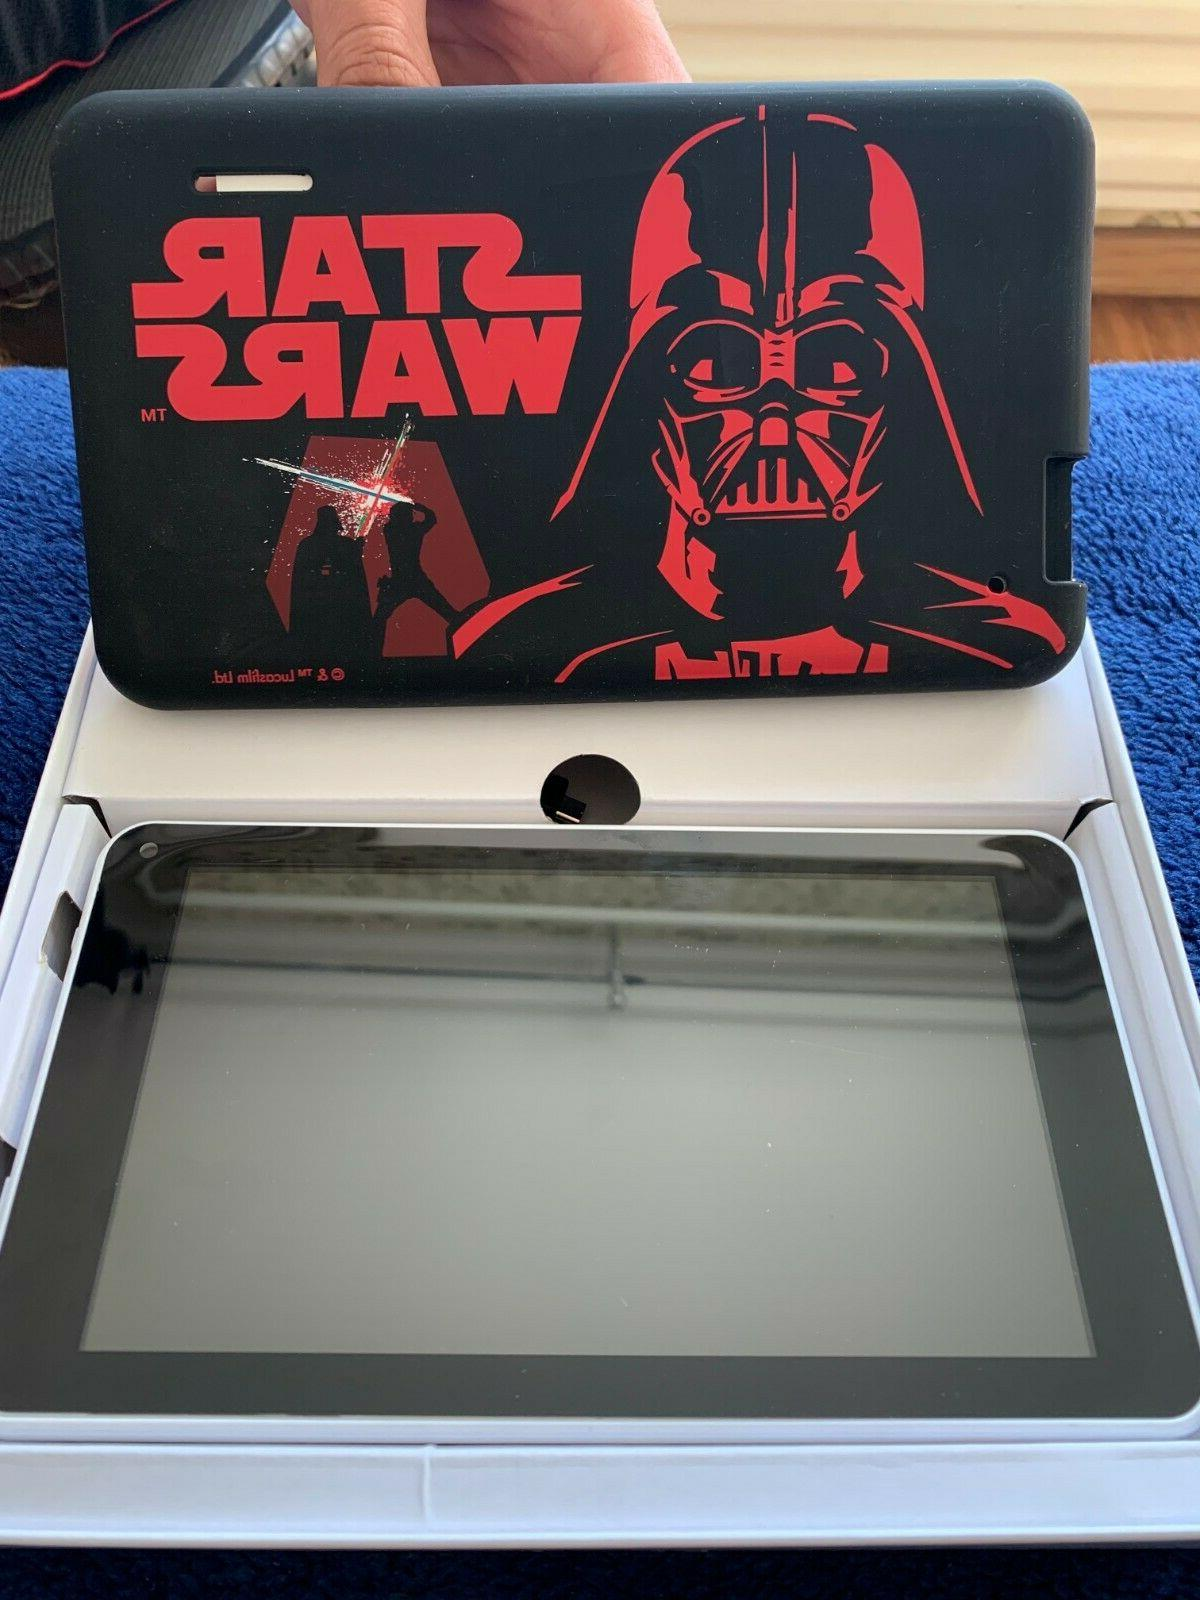 Star Wars Themed Tablet With Pre Loaded Games Tablet Compute